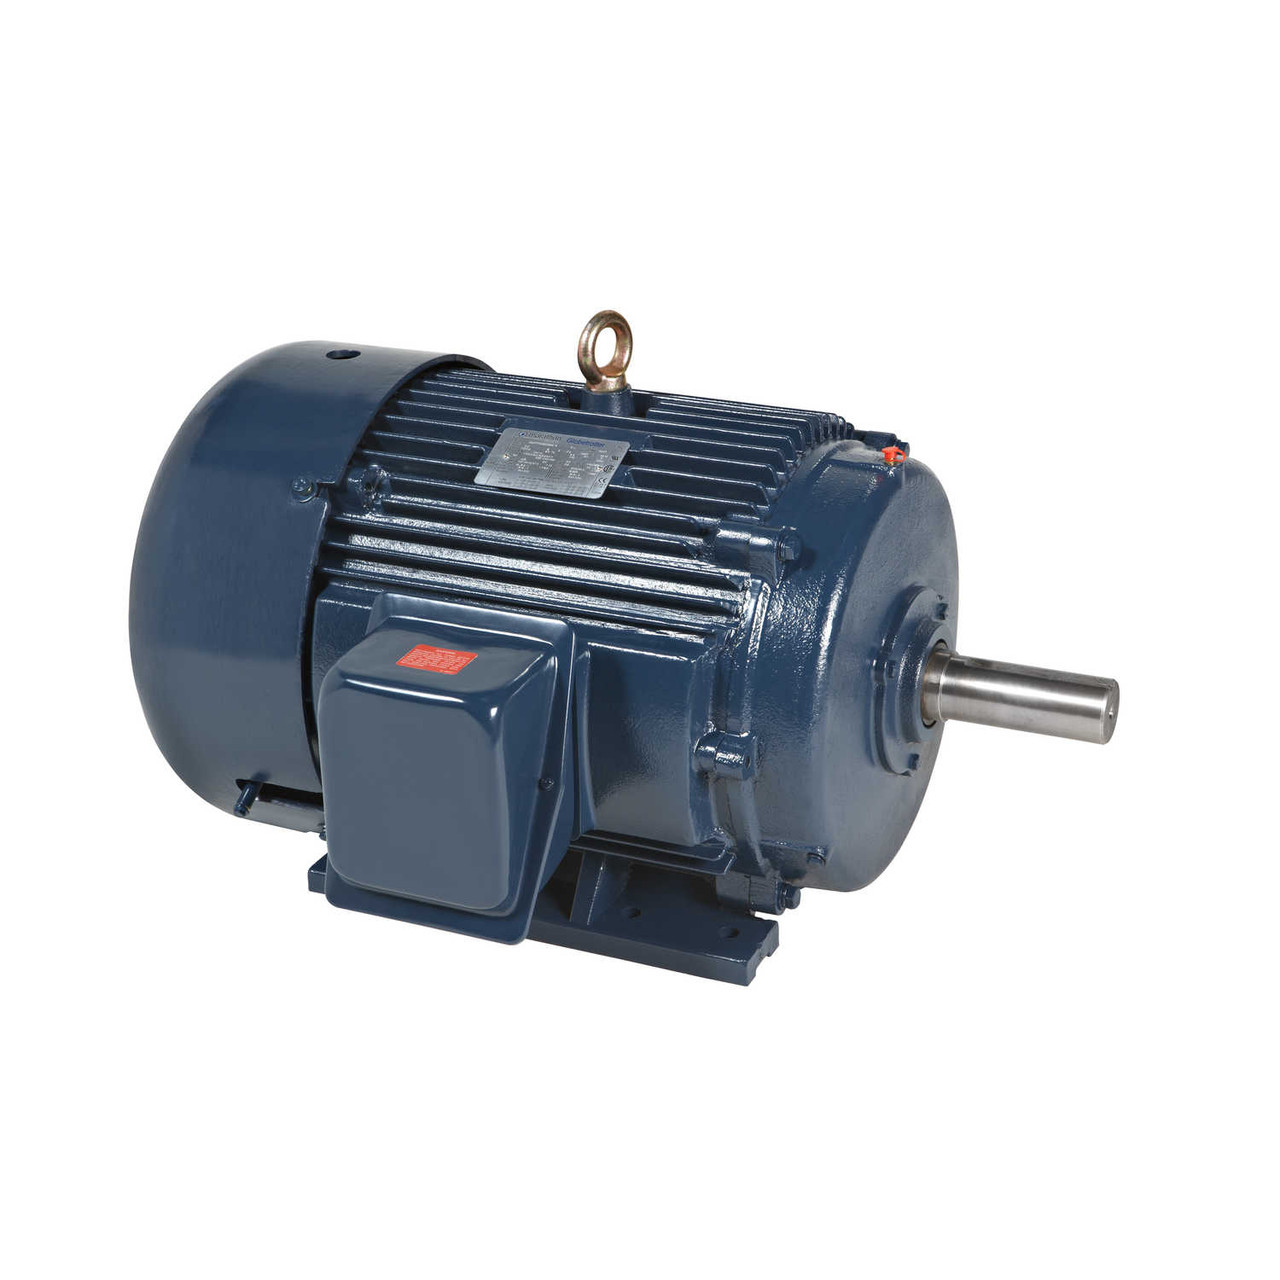 GT1040A Globetrotter Three Phase Totally Enclosed Rigid Base Motor 60 HP